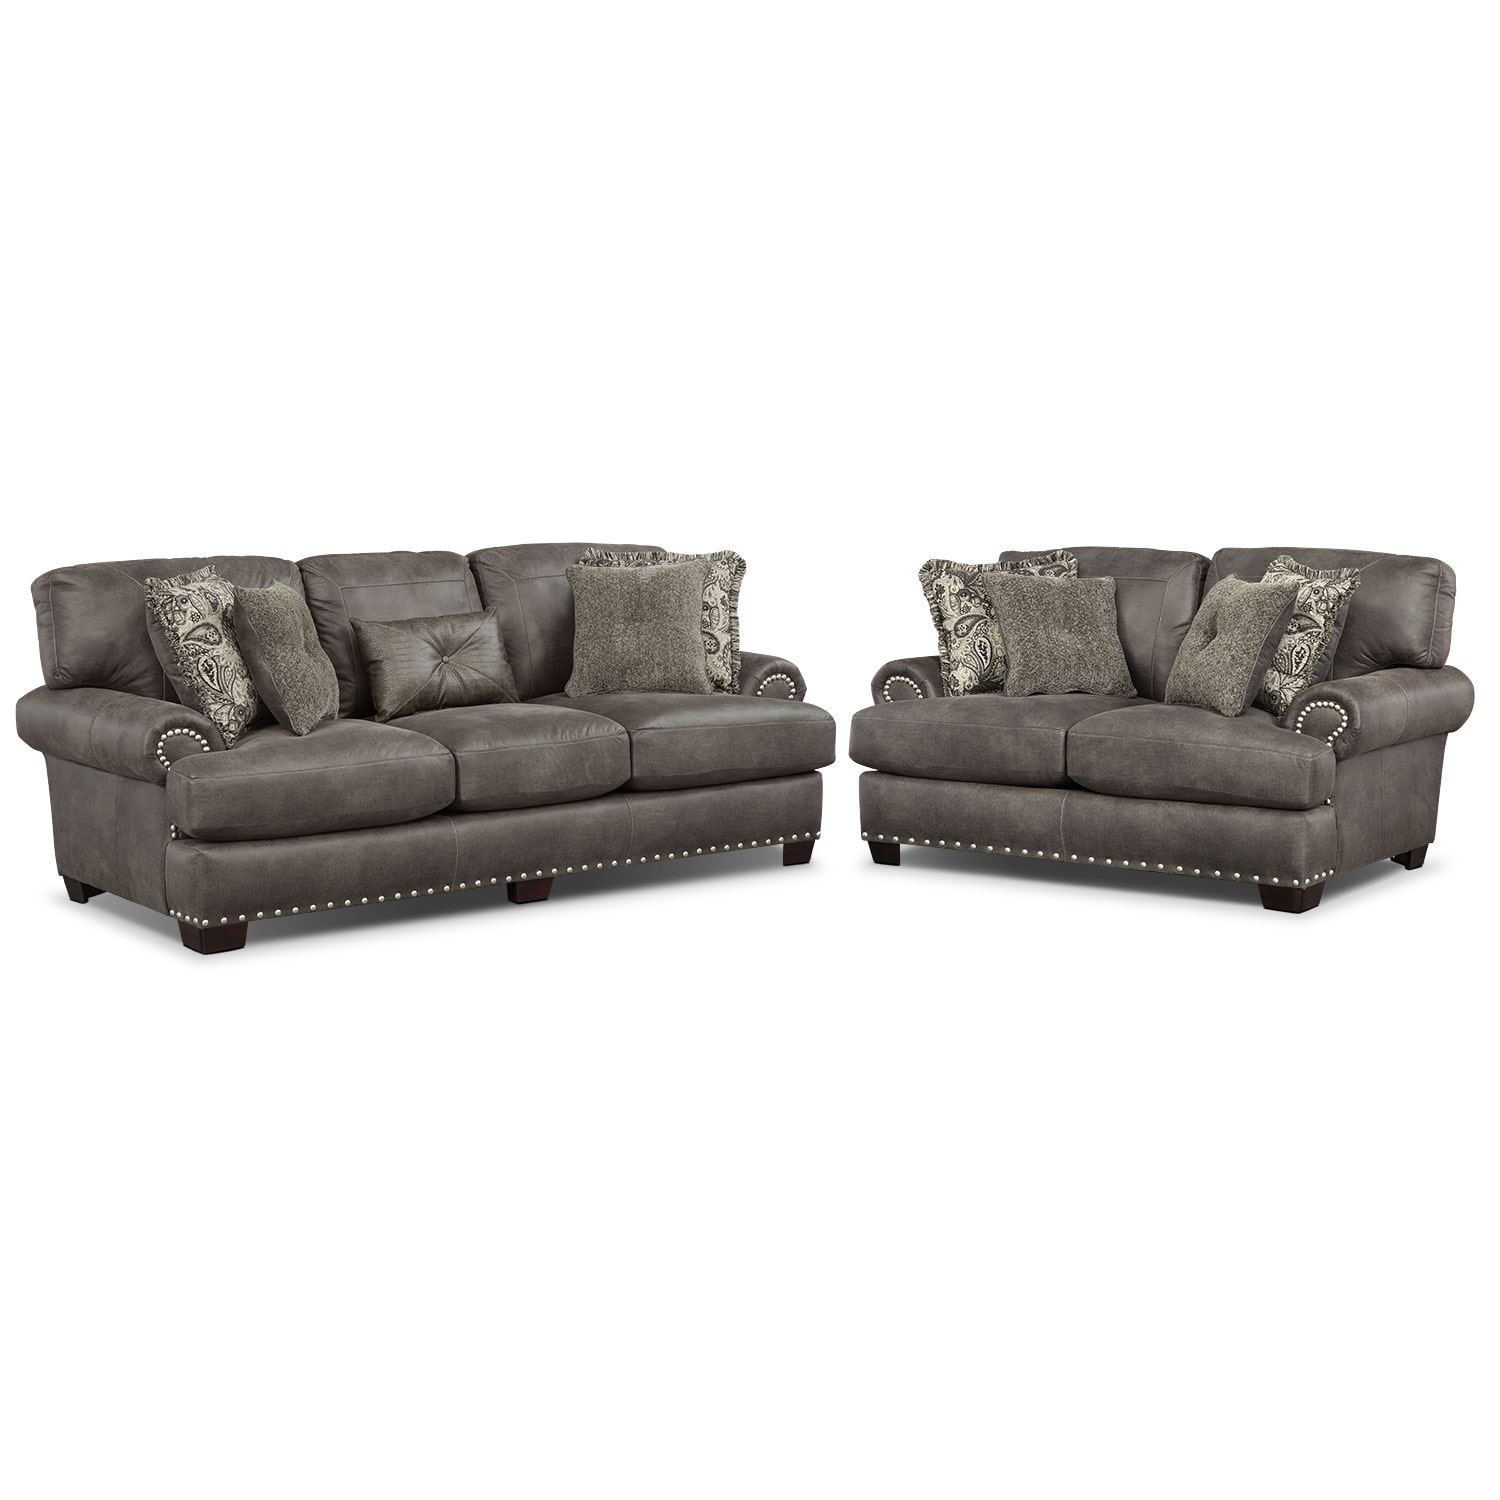 Burlington Sofa and Loveseat Set - Steel